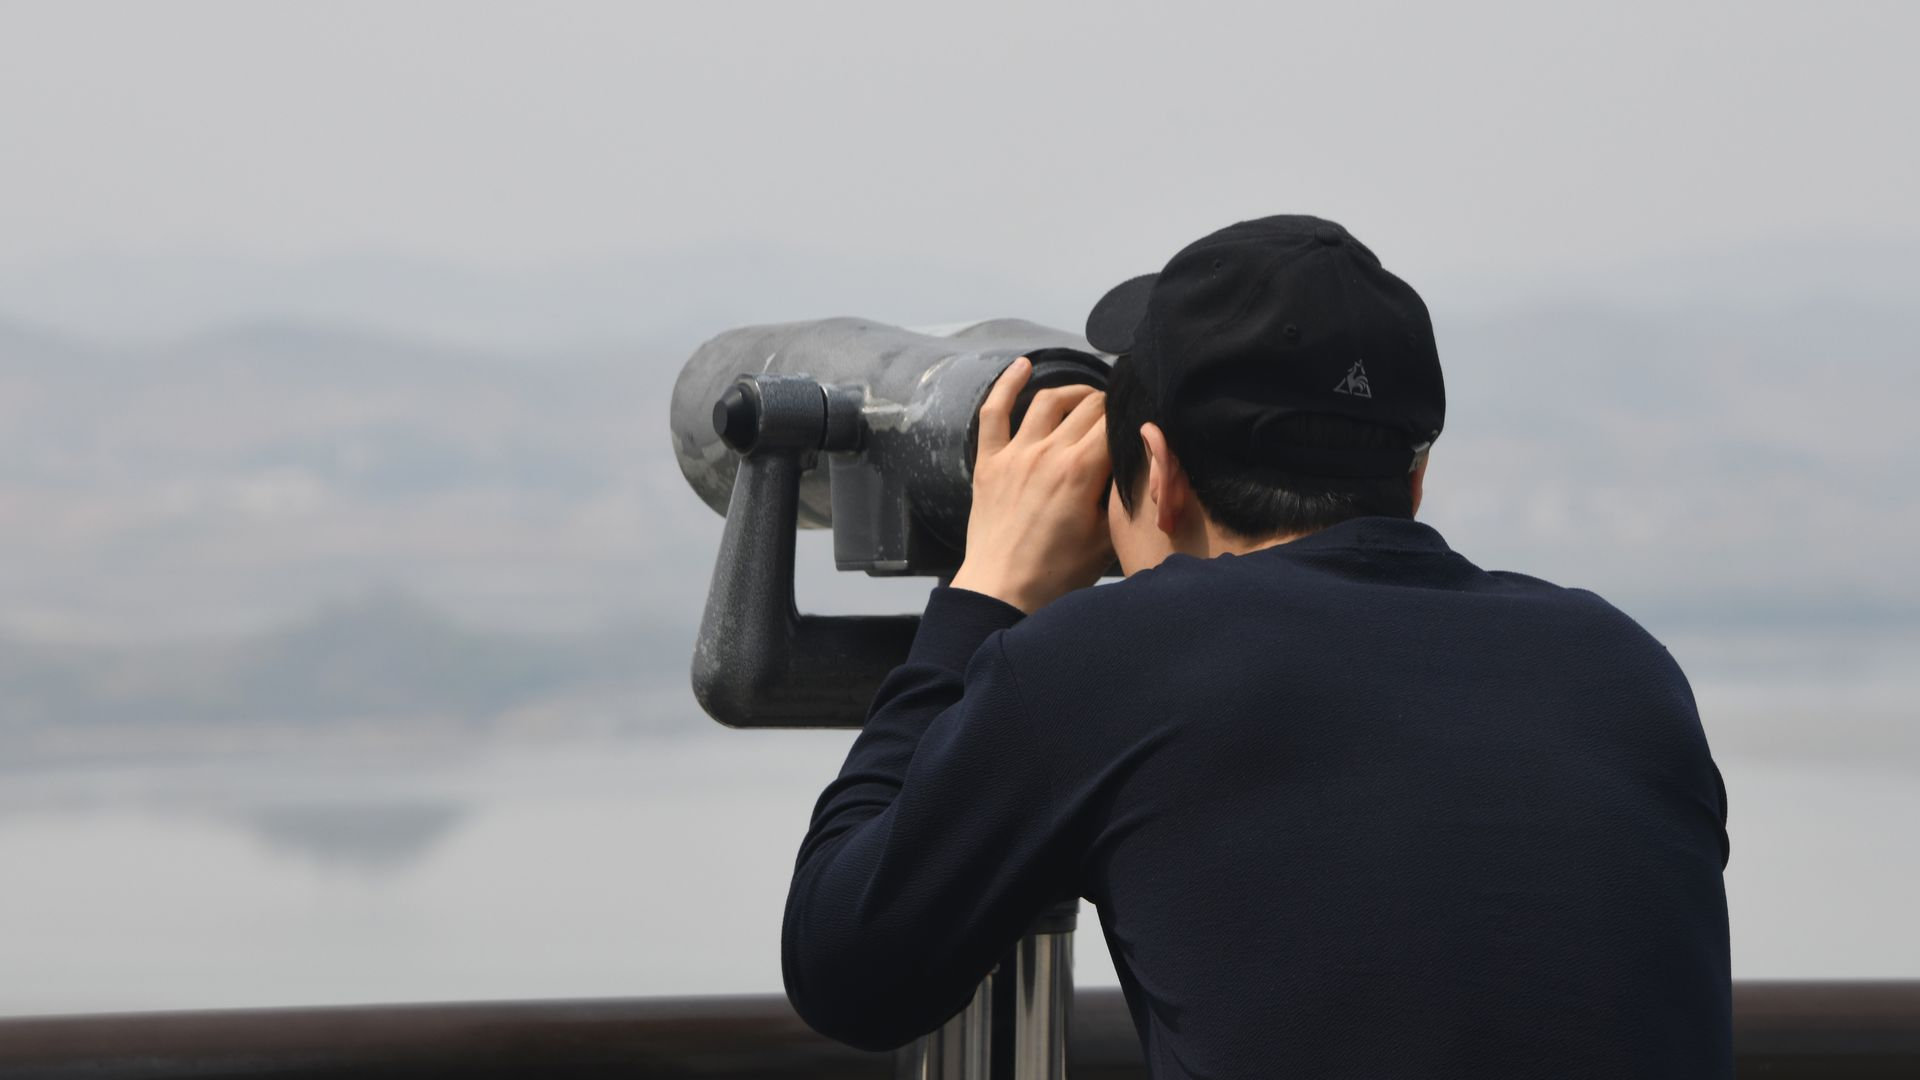 A visitor, wearing all black, looks towards North Korea through binoculars at a South Korean observatory, with a white sky.